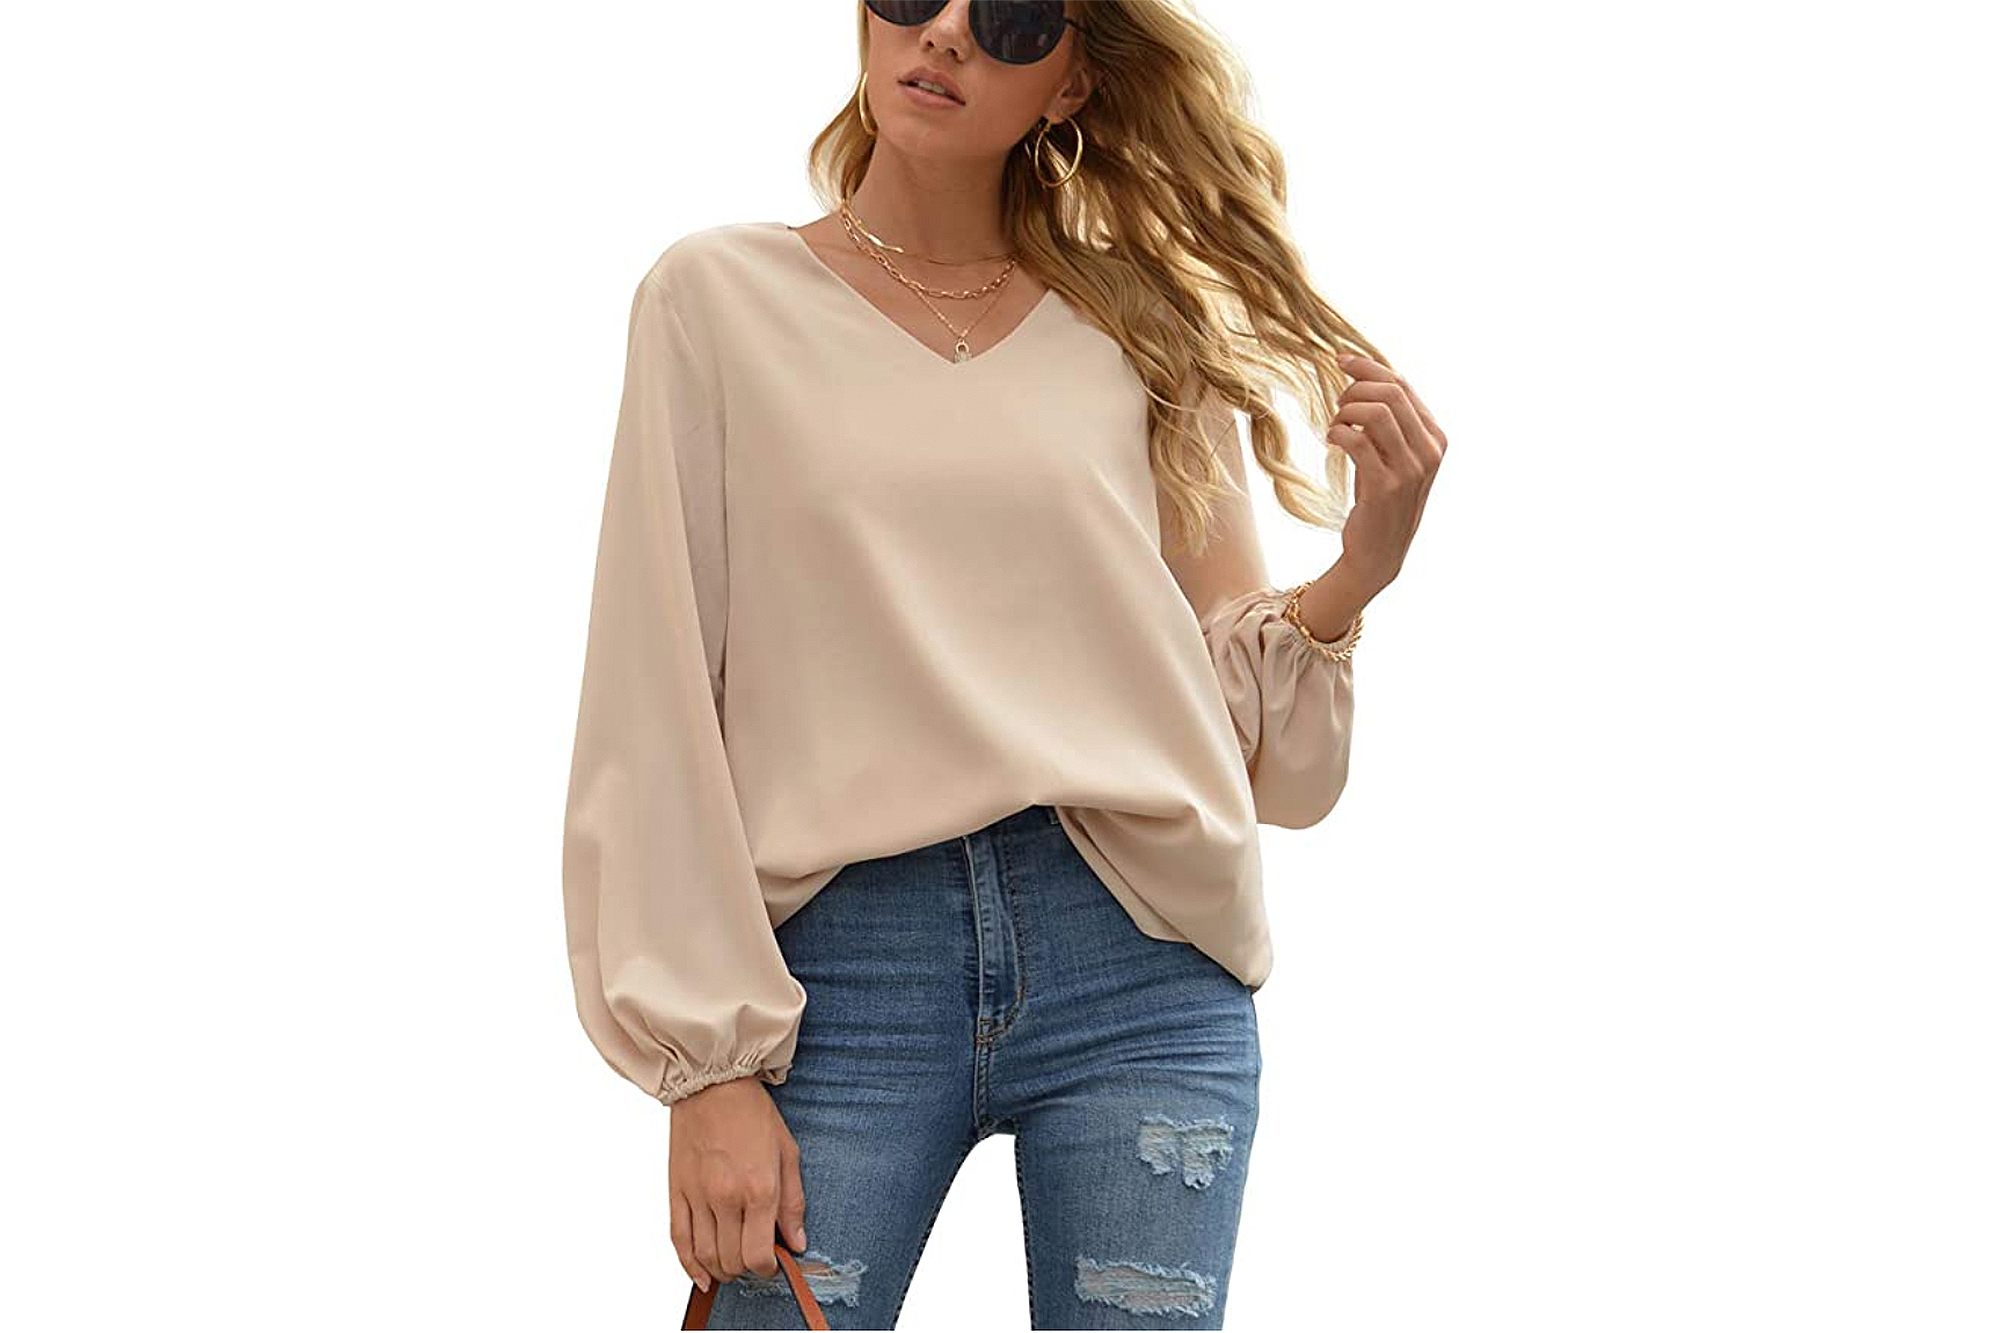 WANGZHI Women's Casual Sweet & Cute Loose Shirt Balloon Sleeve V-Neck Blouse Top